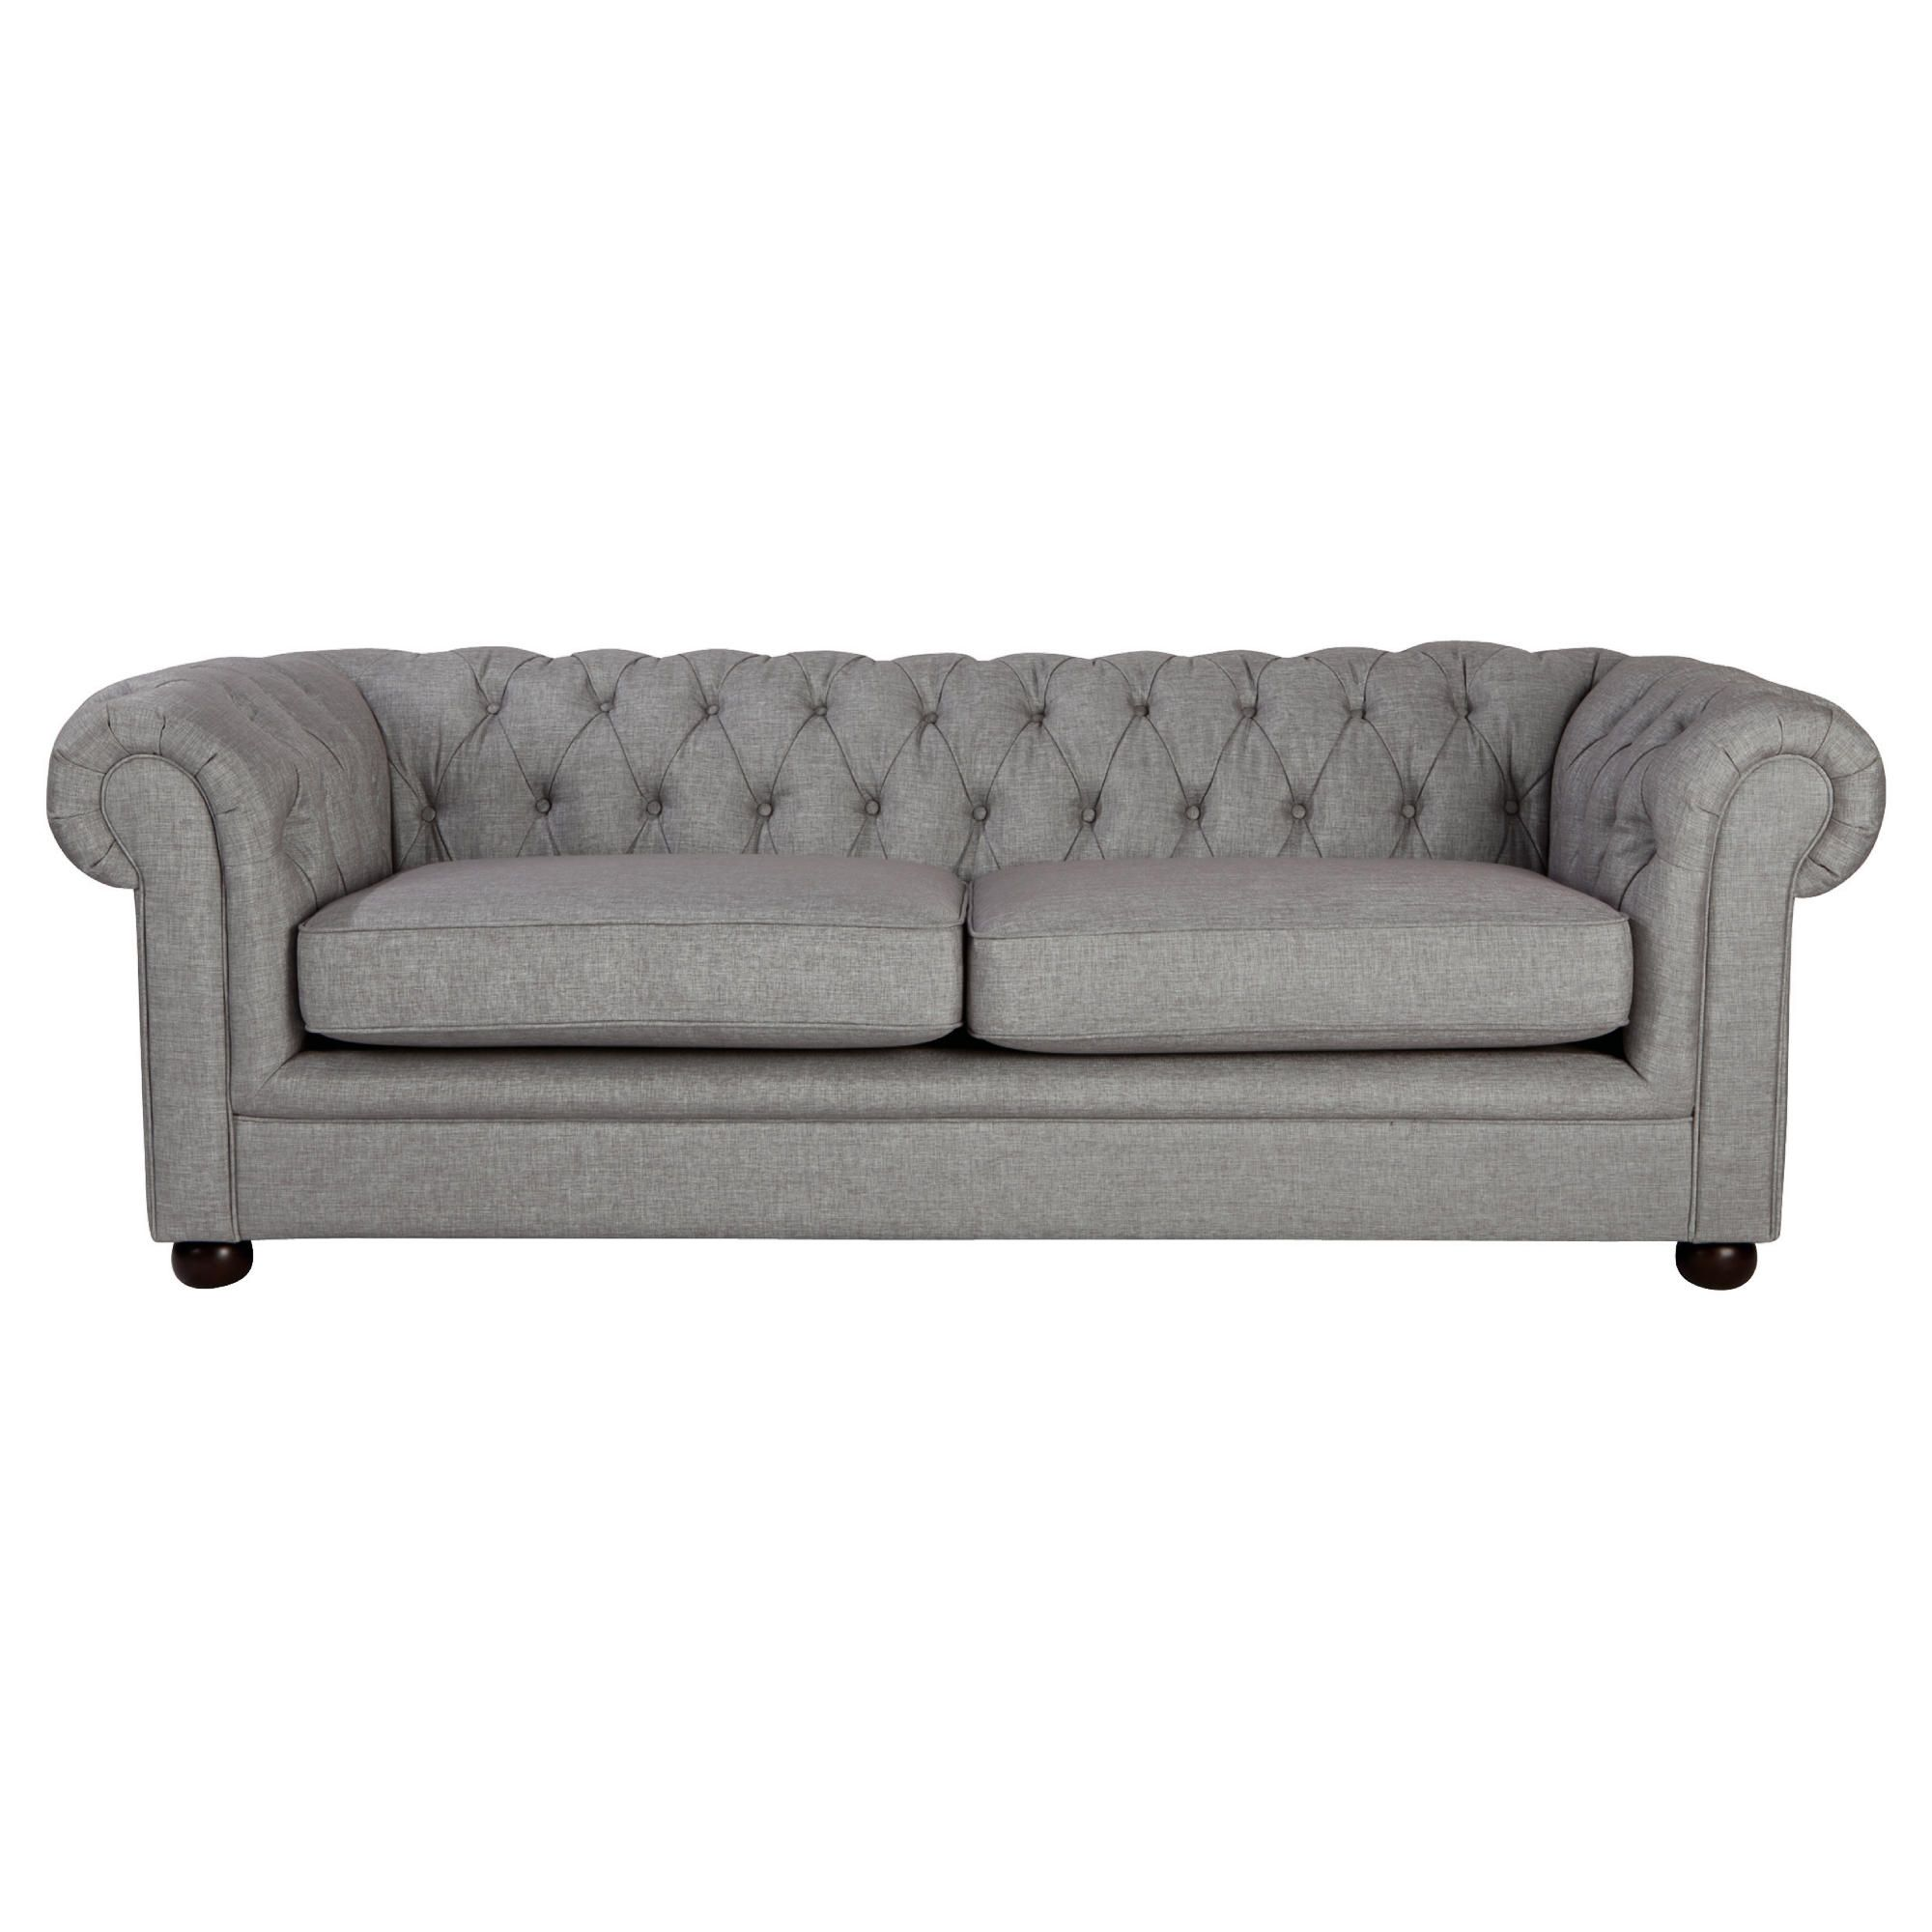 Chesterfield Linen Medium Sofa, Silver at Tesco Direct